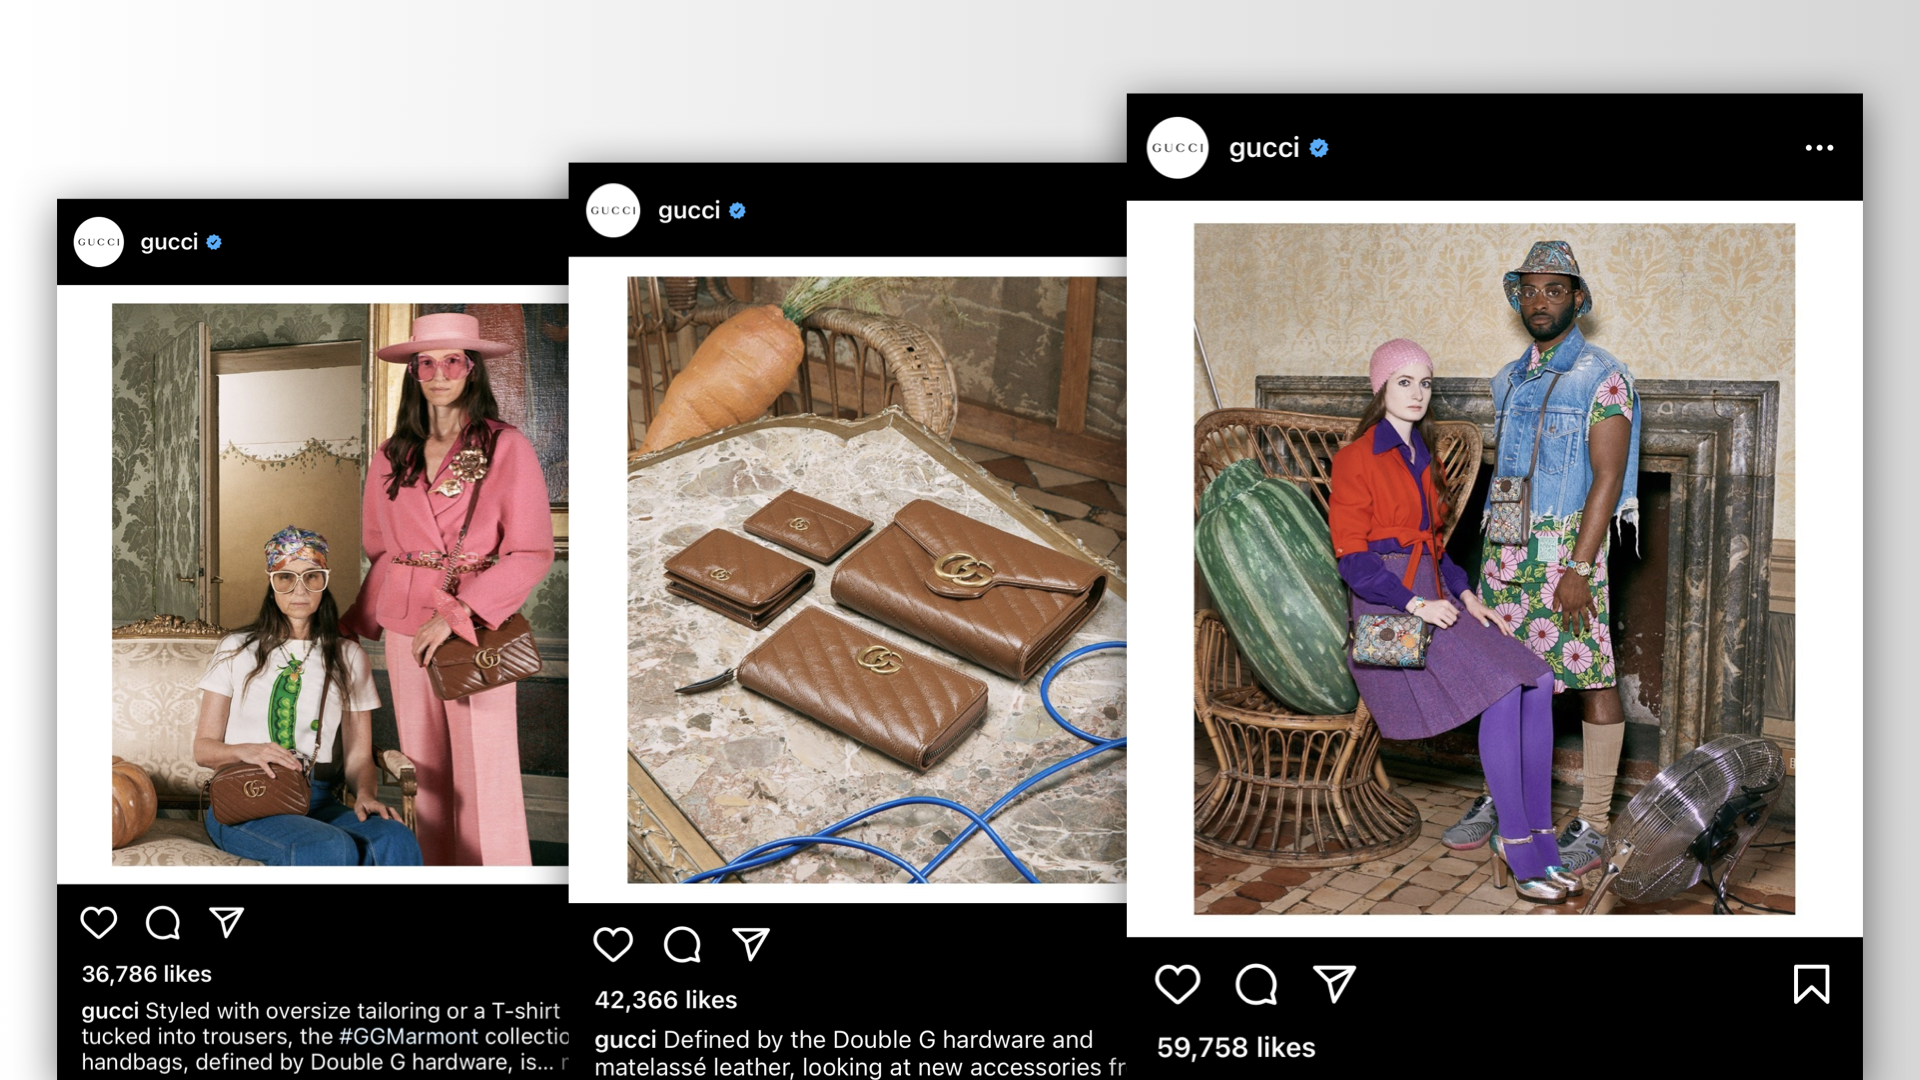 Digital agency on DTC strategy: Gucci retains a strong control of its image, curating pieces of content that embody what it wants consumers to associate with its brand.